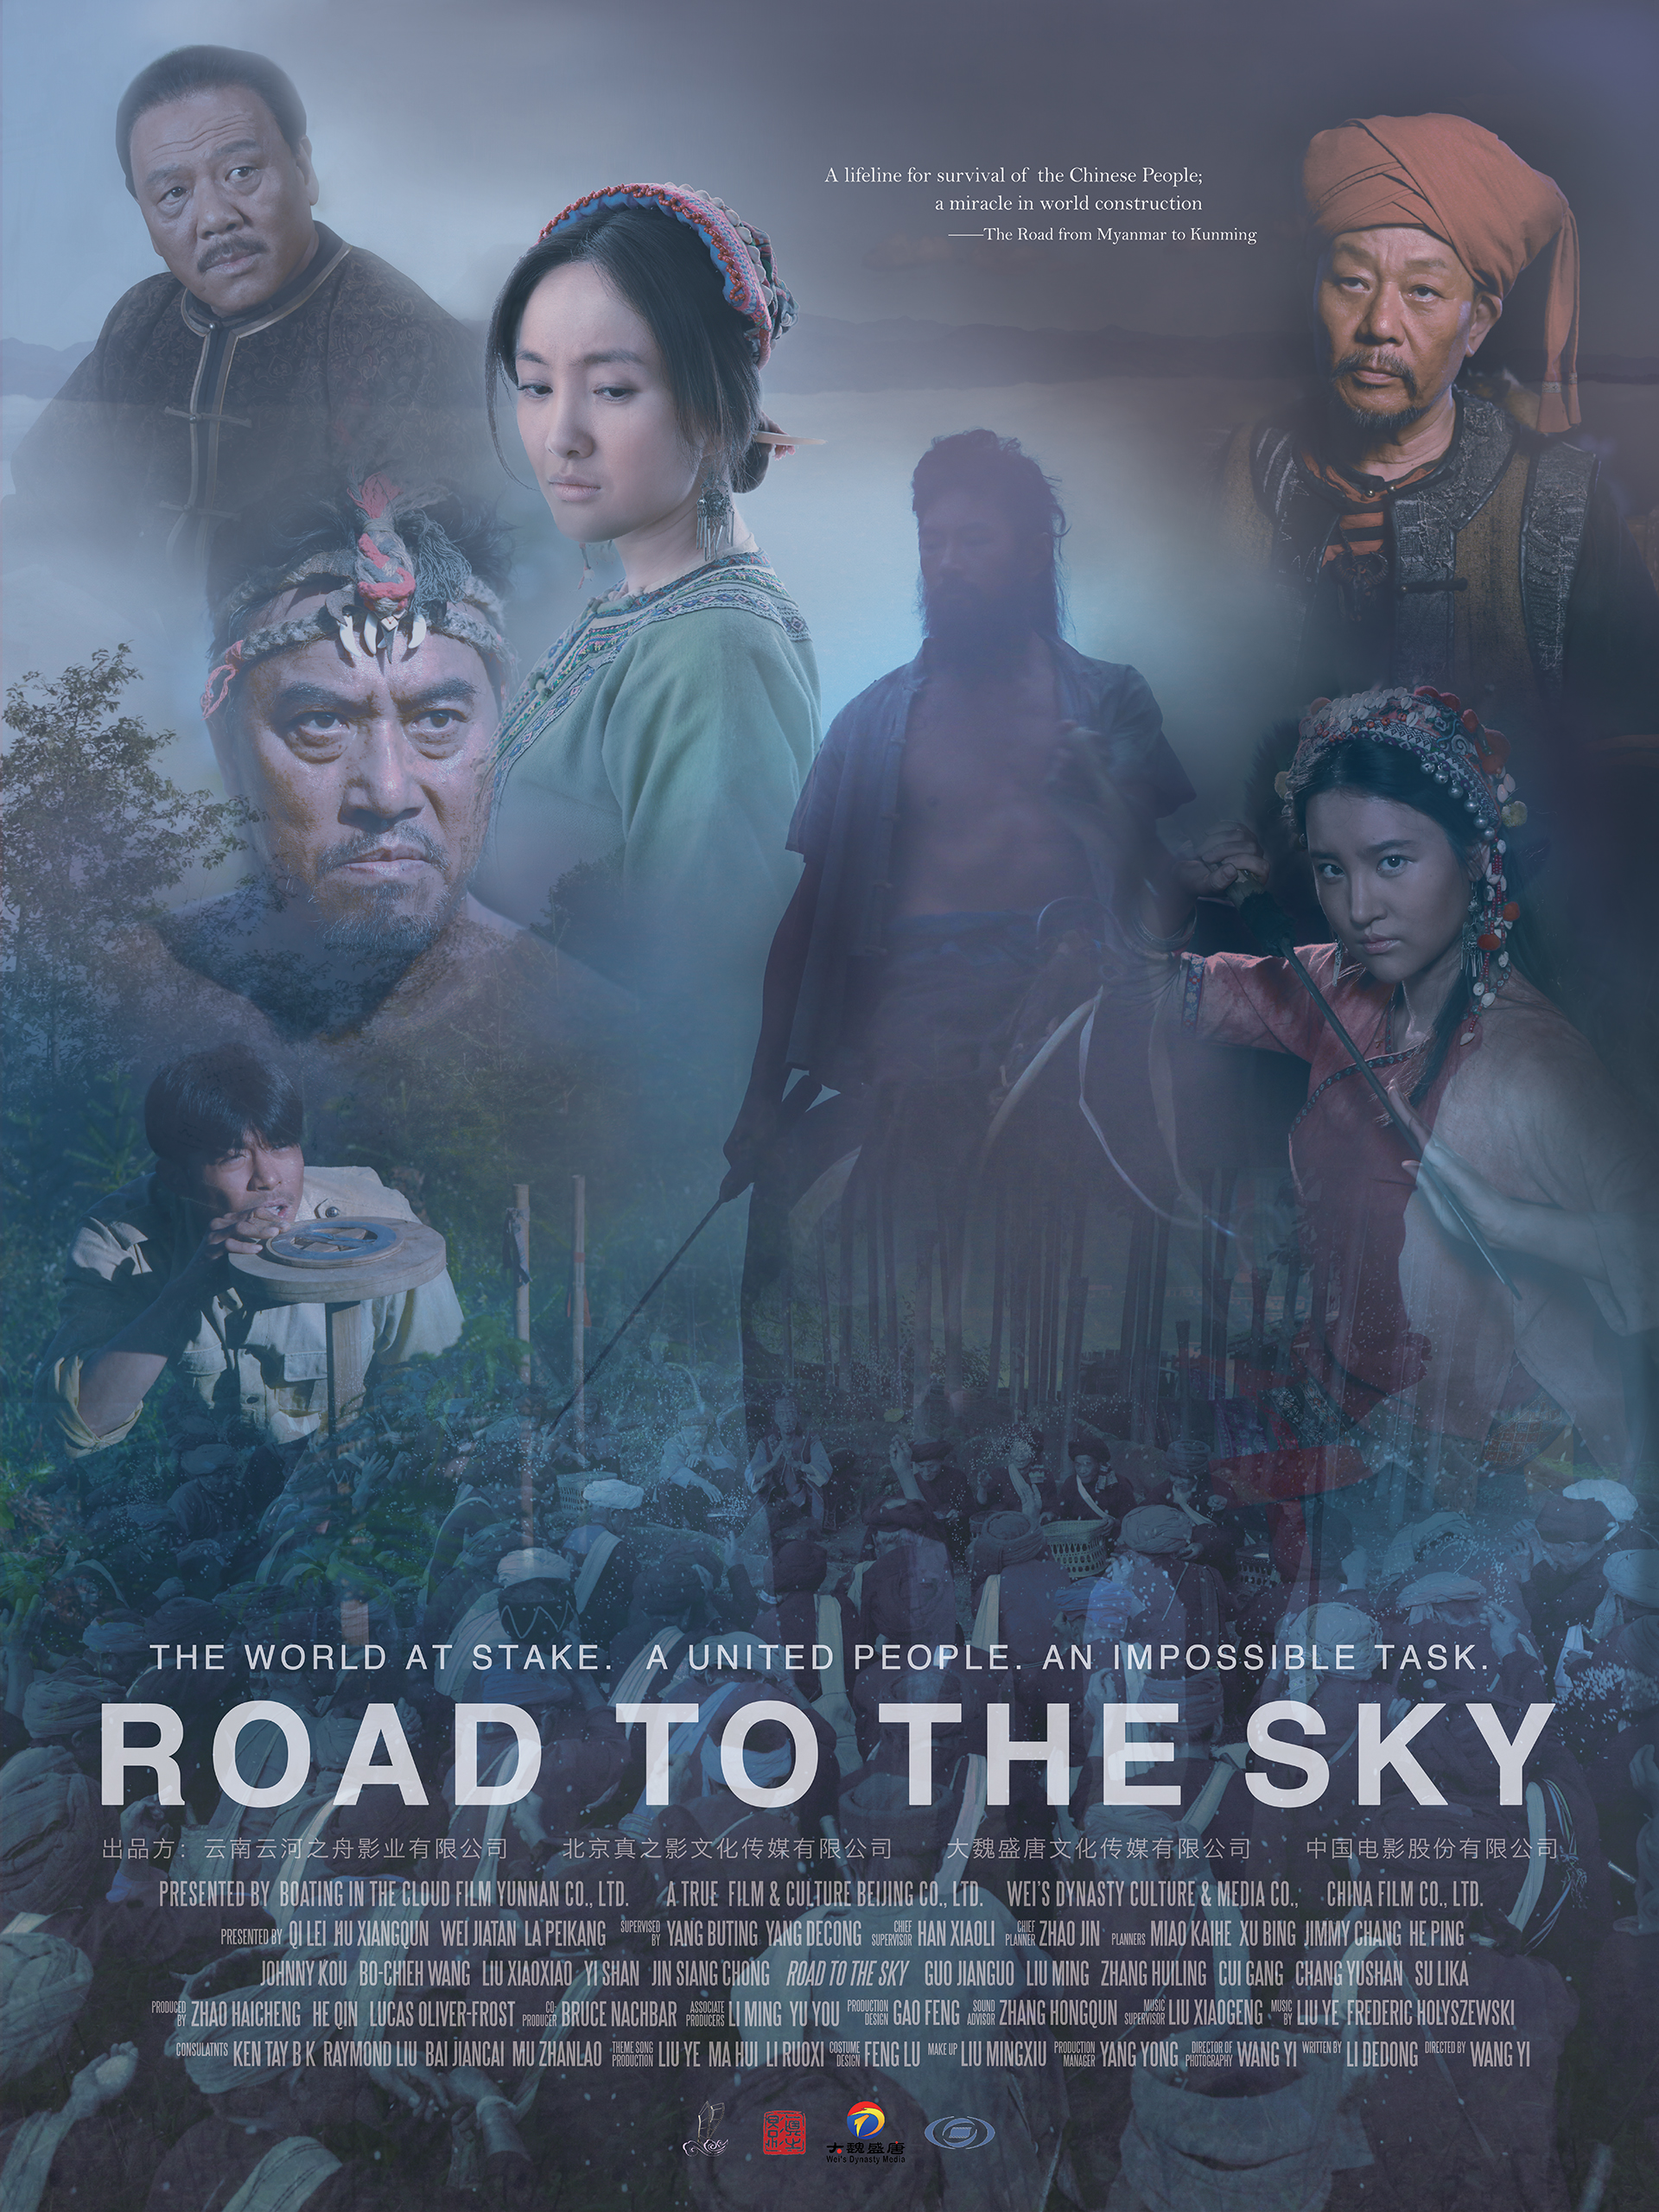 ROAD TO THE SKY - Intl Poster.jpg